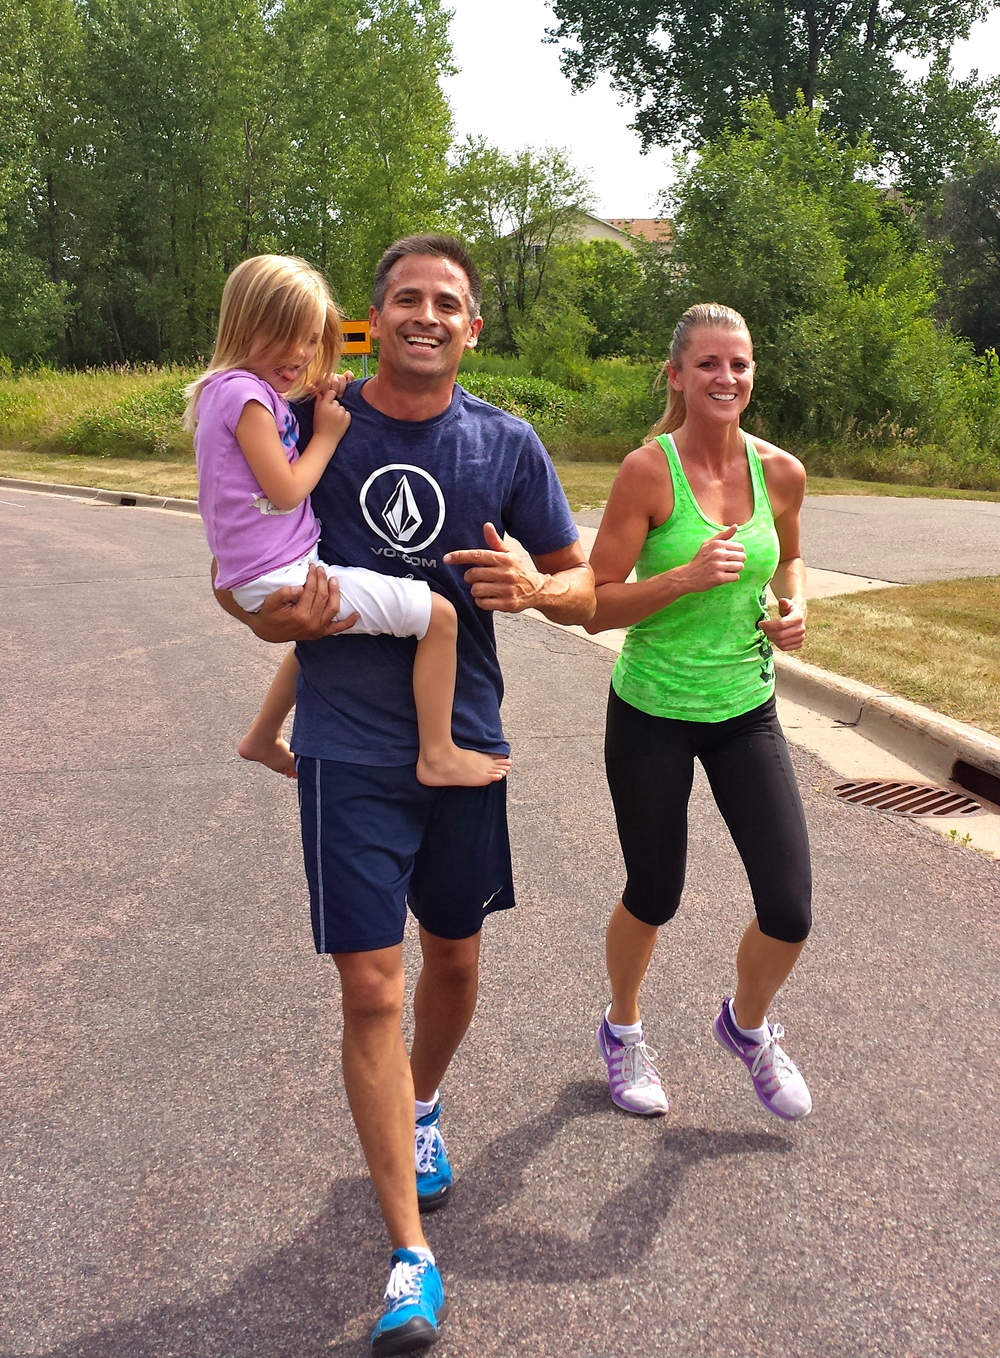 Paul and Michele carrying their daughter during med ball partner runs last Saturday